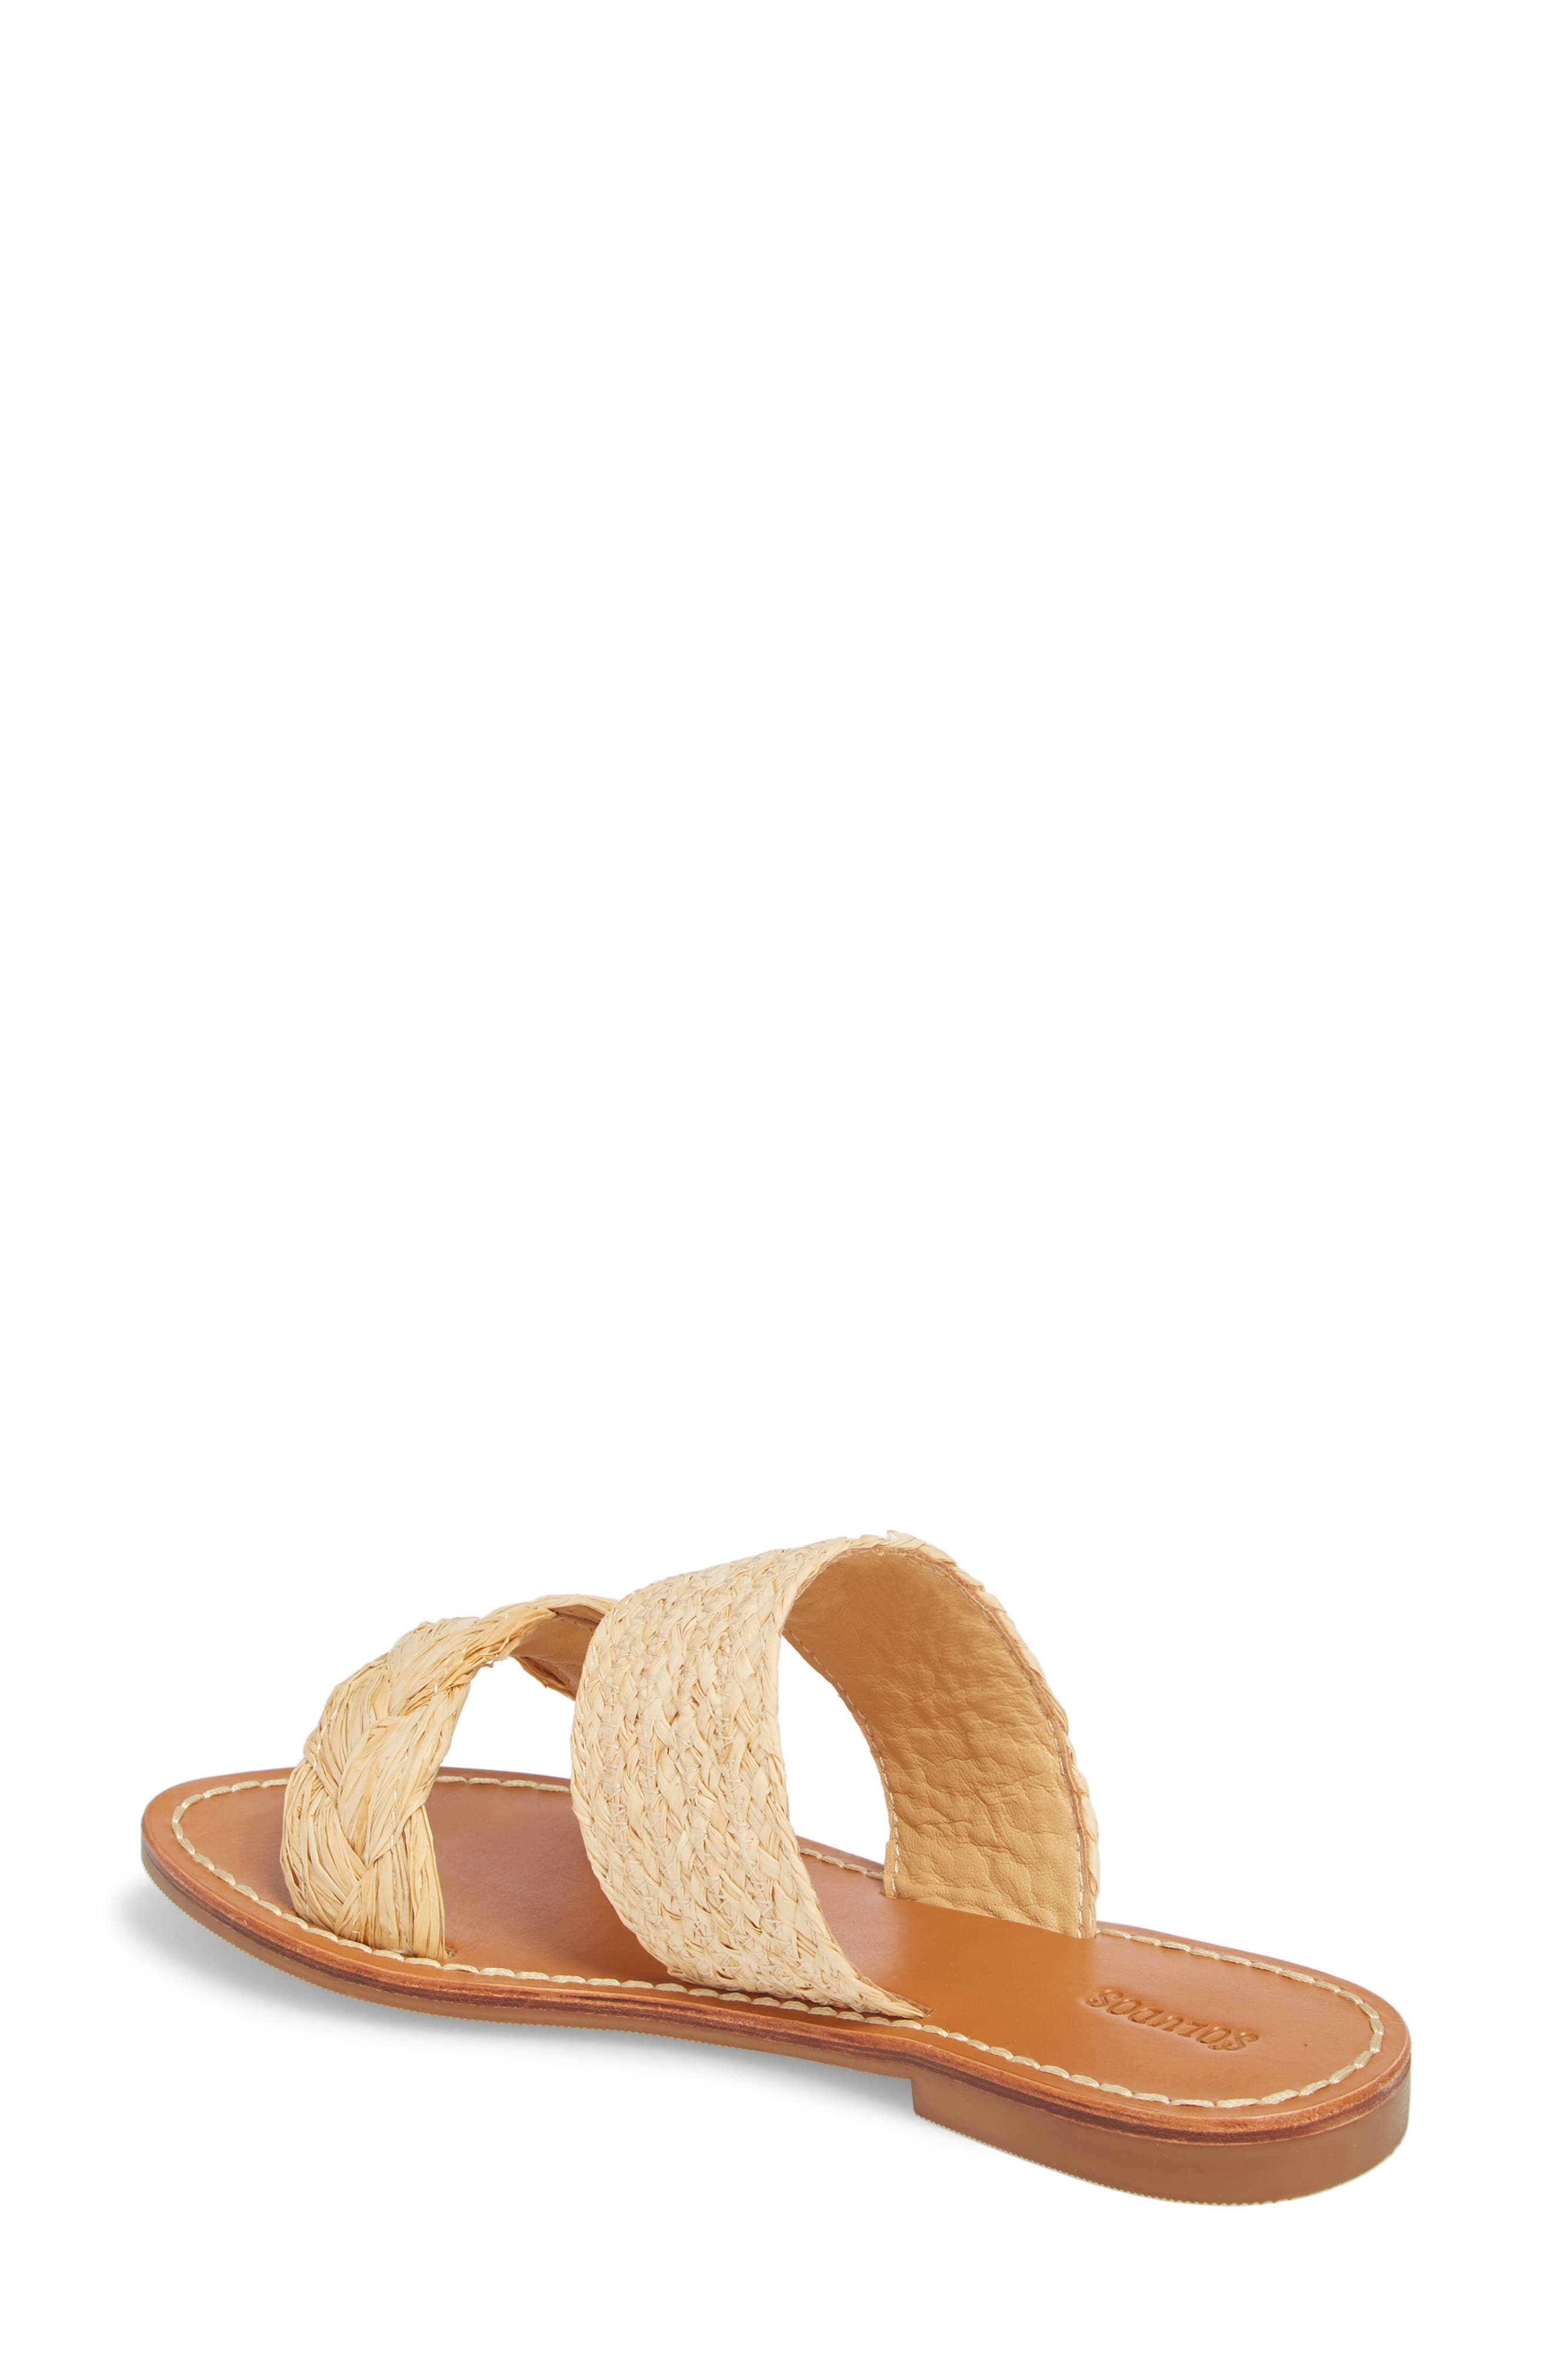 Braided Slide Sandal,                             Alternate thumbnail 2, color,                             Natural Leather